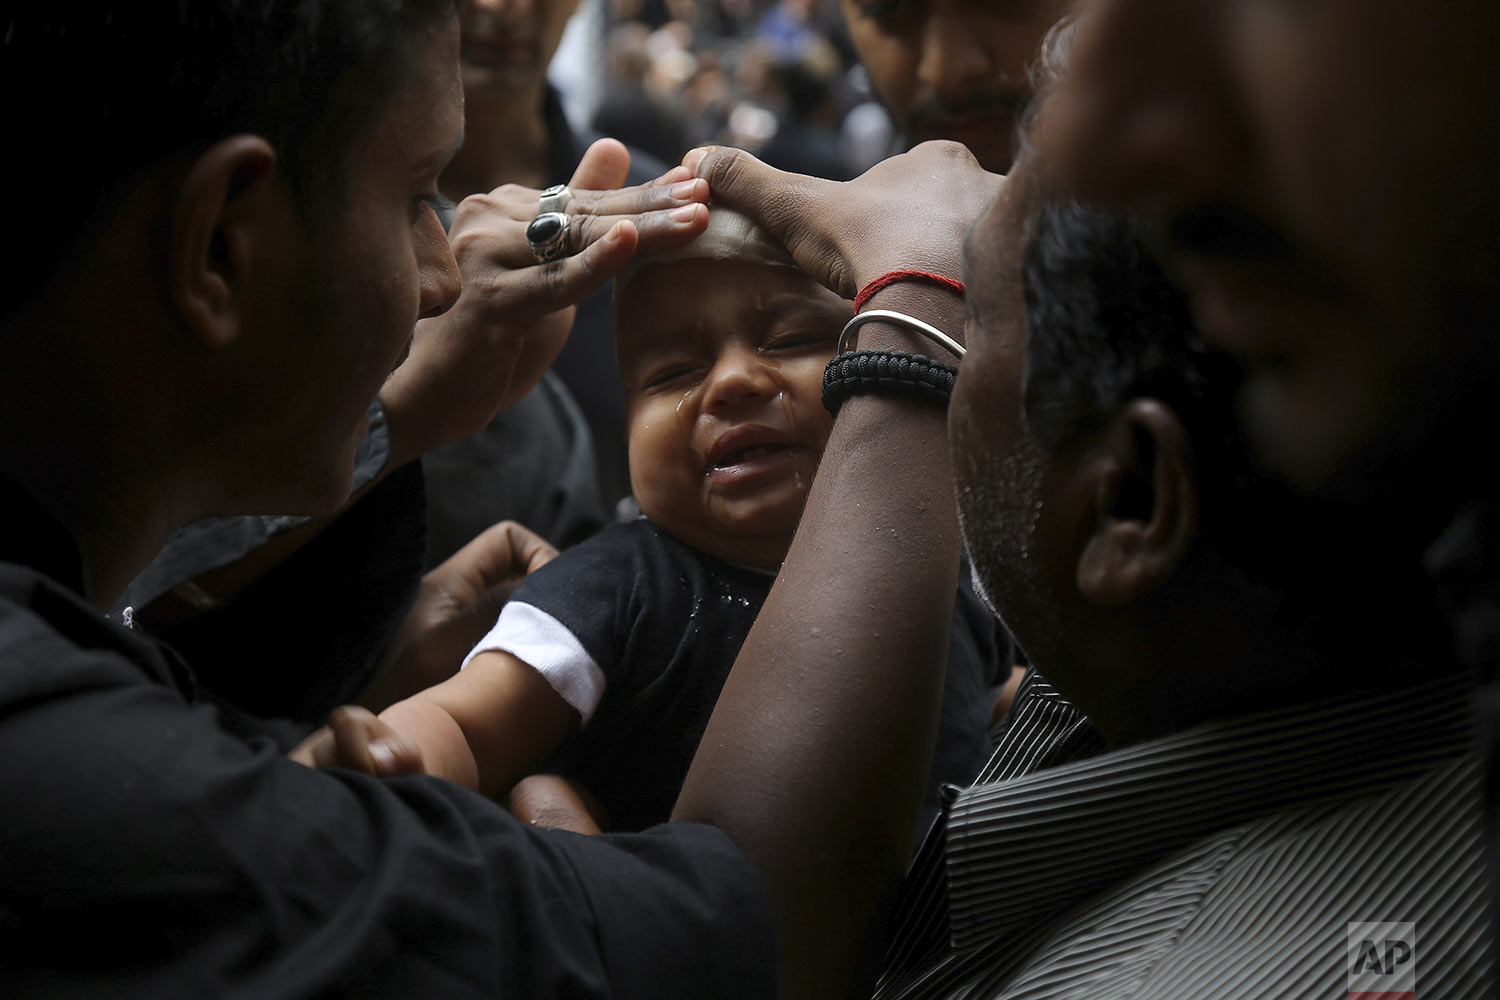 A Shiite Muslim child cries after he was given a cut on the forehead during an Ashoura procession in Hyderabad, India, Tuesday, Sept. 10, 2019. (AP Photo/Mahesh Kumar A.)